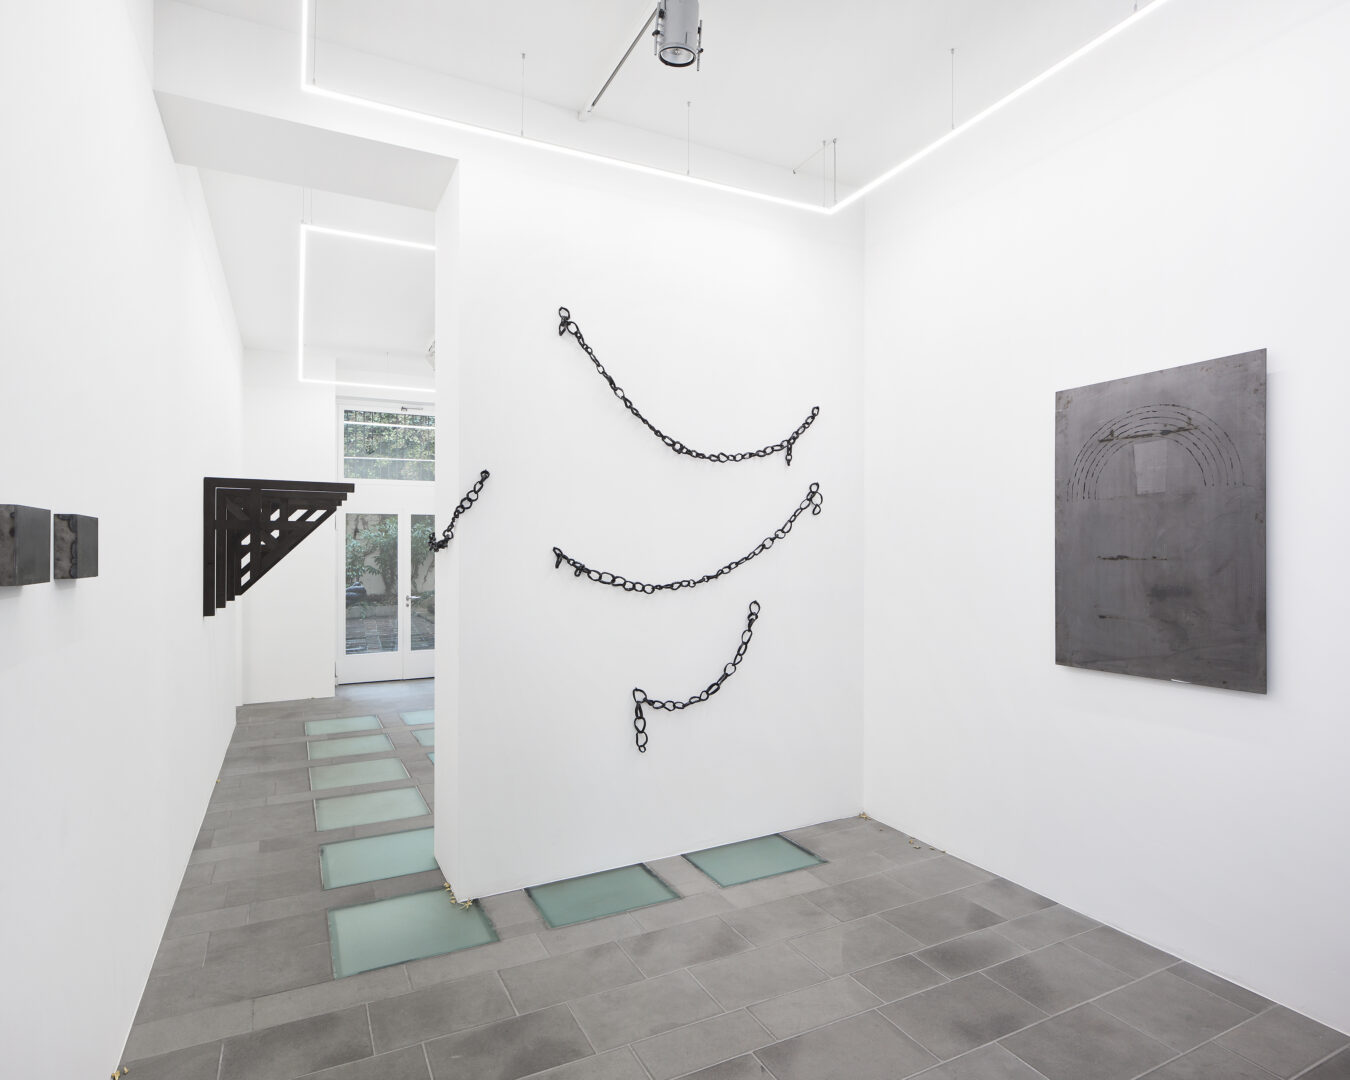 Exhibition View Marta Margnetti and Alfredo Aceto Groupshow at Galerie Lange + Pult, Zurich, 2019 / Photo: Sully Balmassière / Courtesy: the artist and Galerie Lange + Pult